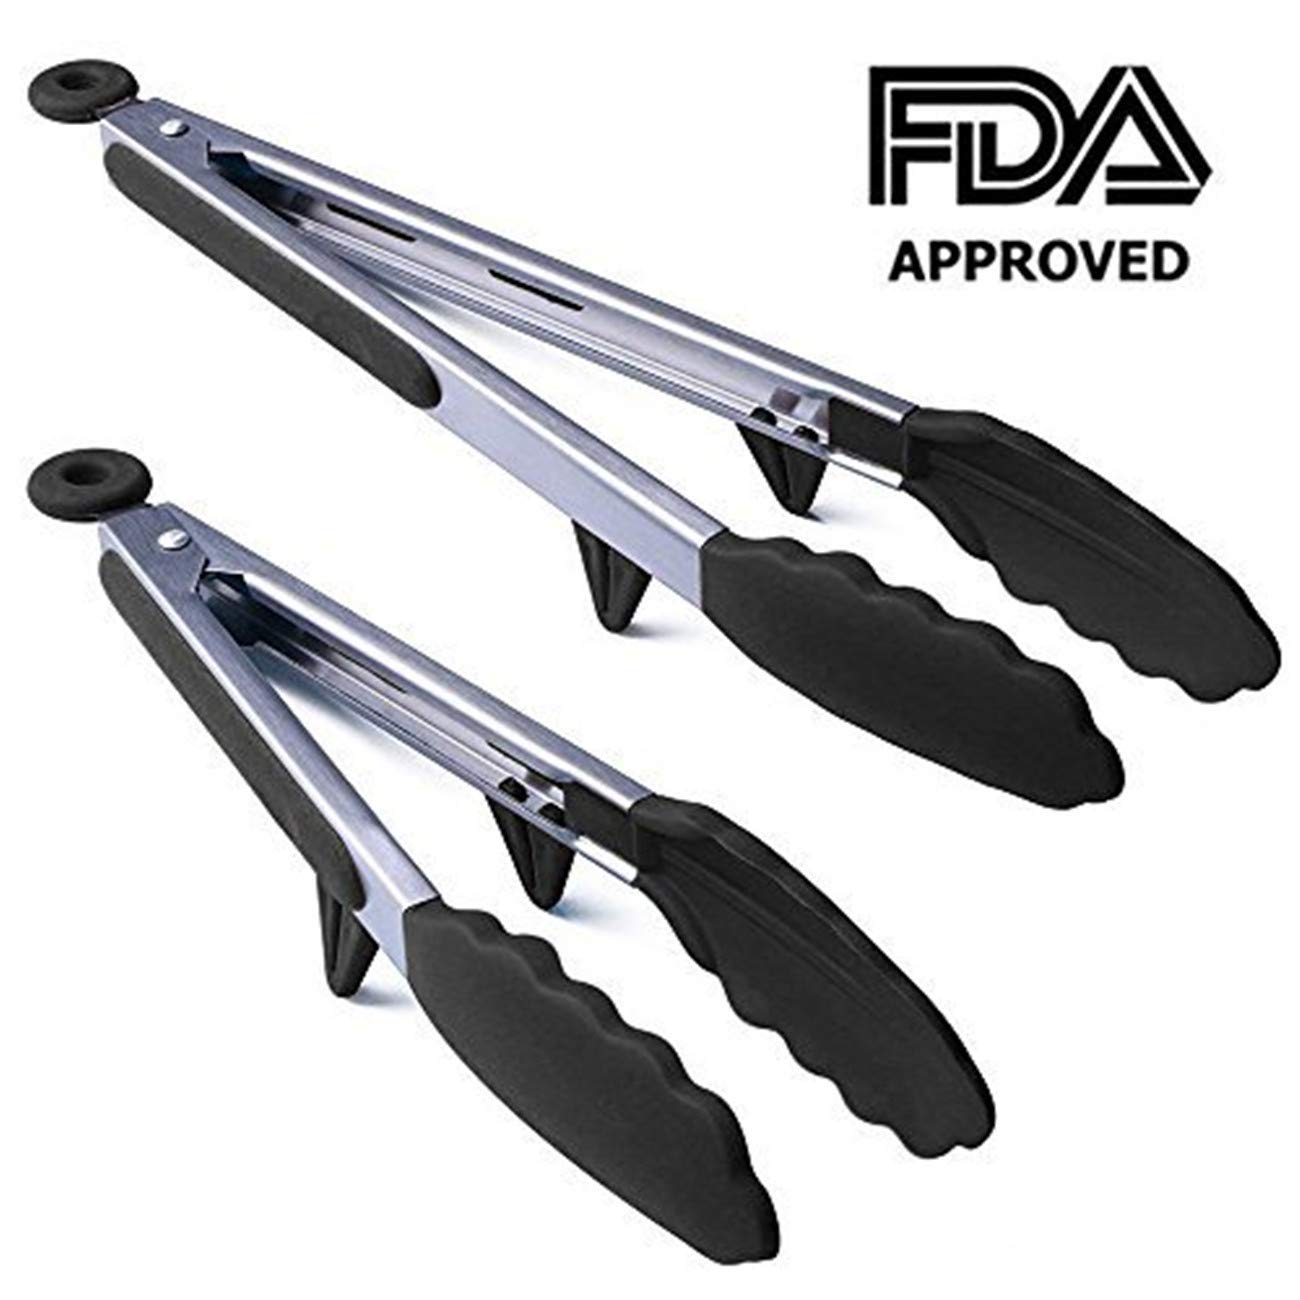 US Fine Kitchenware Silicone Kitchen Tongs 2 Pack (9-Inch & 12-Inch) Stainless Steel Non-Stick Cooking Tongs Soft Silicone Heads and Stands Design for Cooking,Salad,BBQ Grilling and Serving(Black)